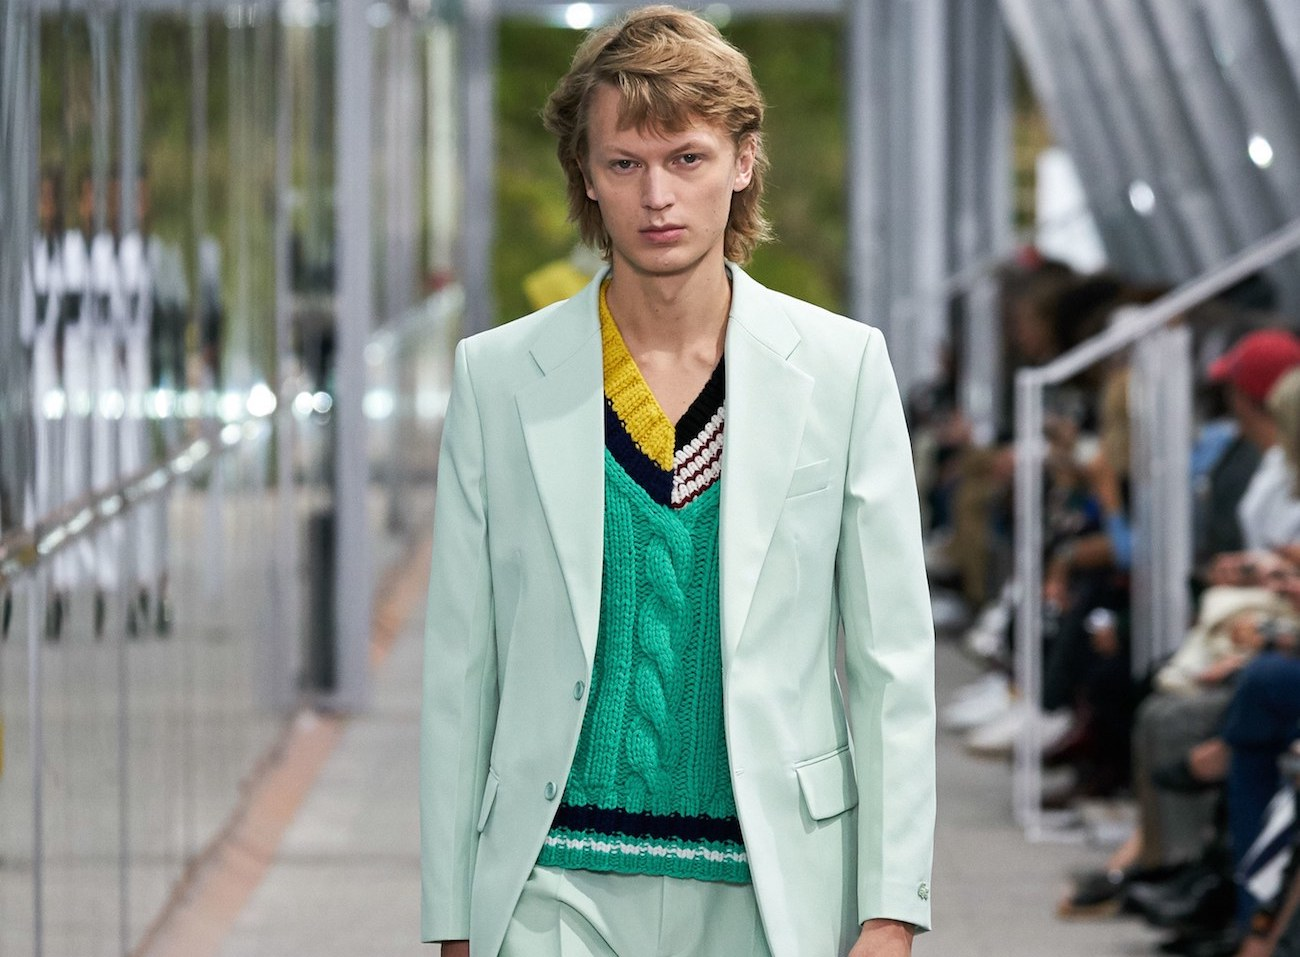 PFW: Lacoste Spring/Summer 2020 Collection